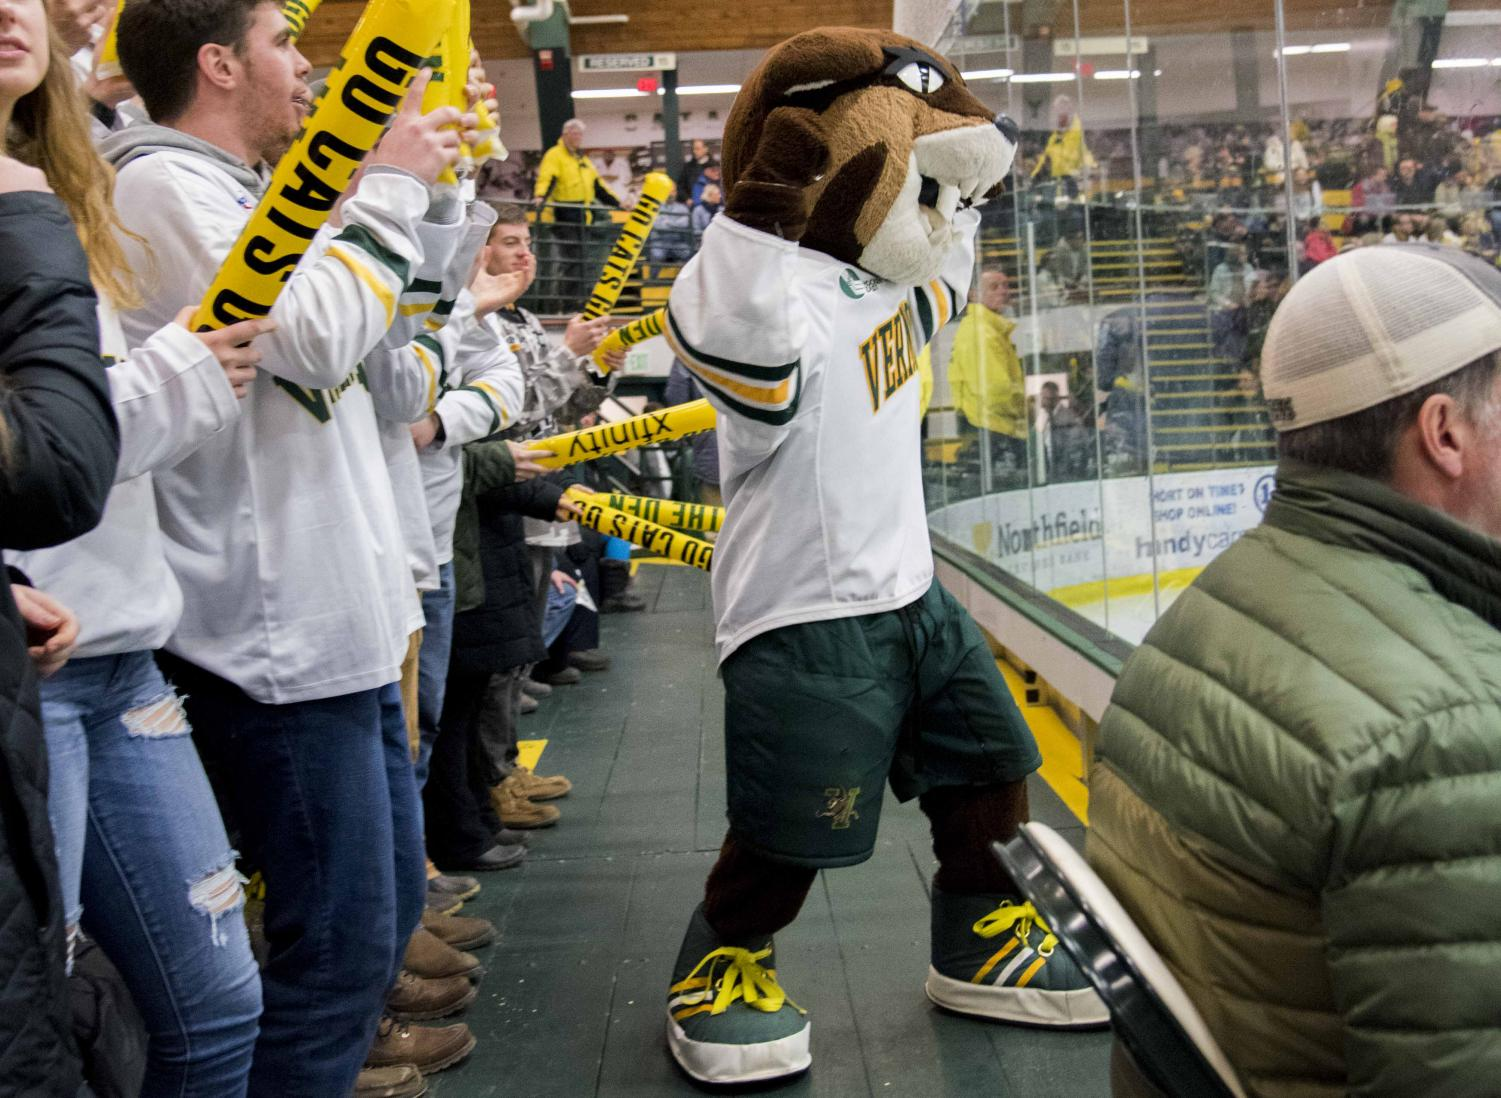 Cat attends a men's hockey game, Nov. 30, 2018. Rally works during hockey games to pump up the crowd with cheers and dances.